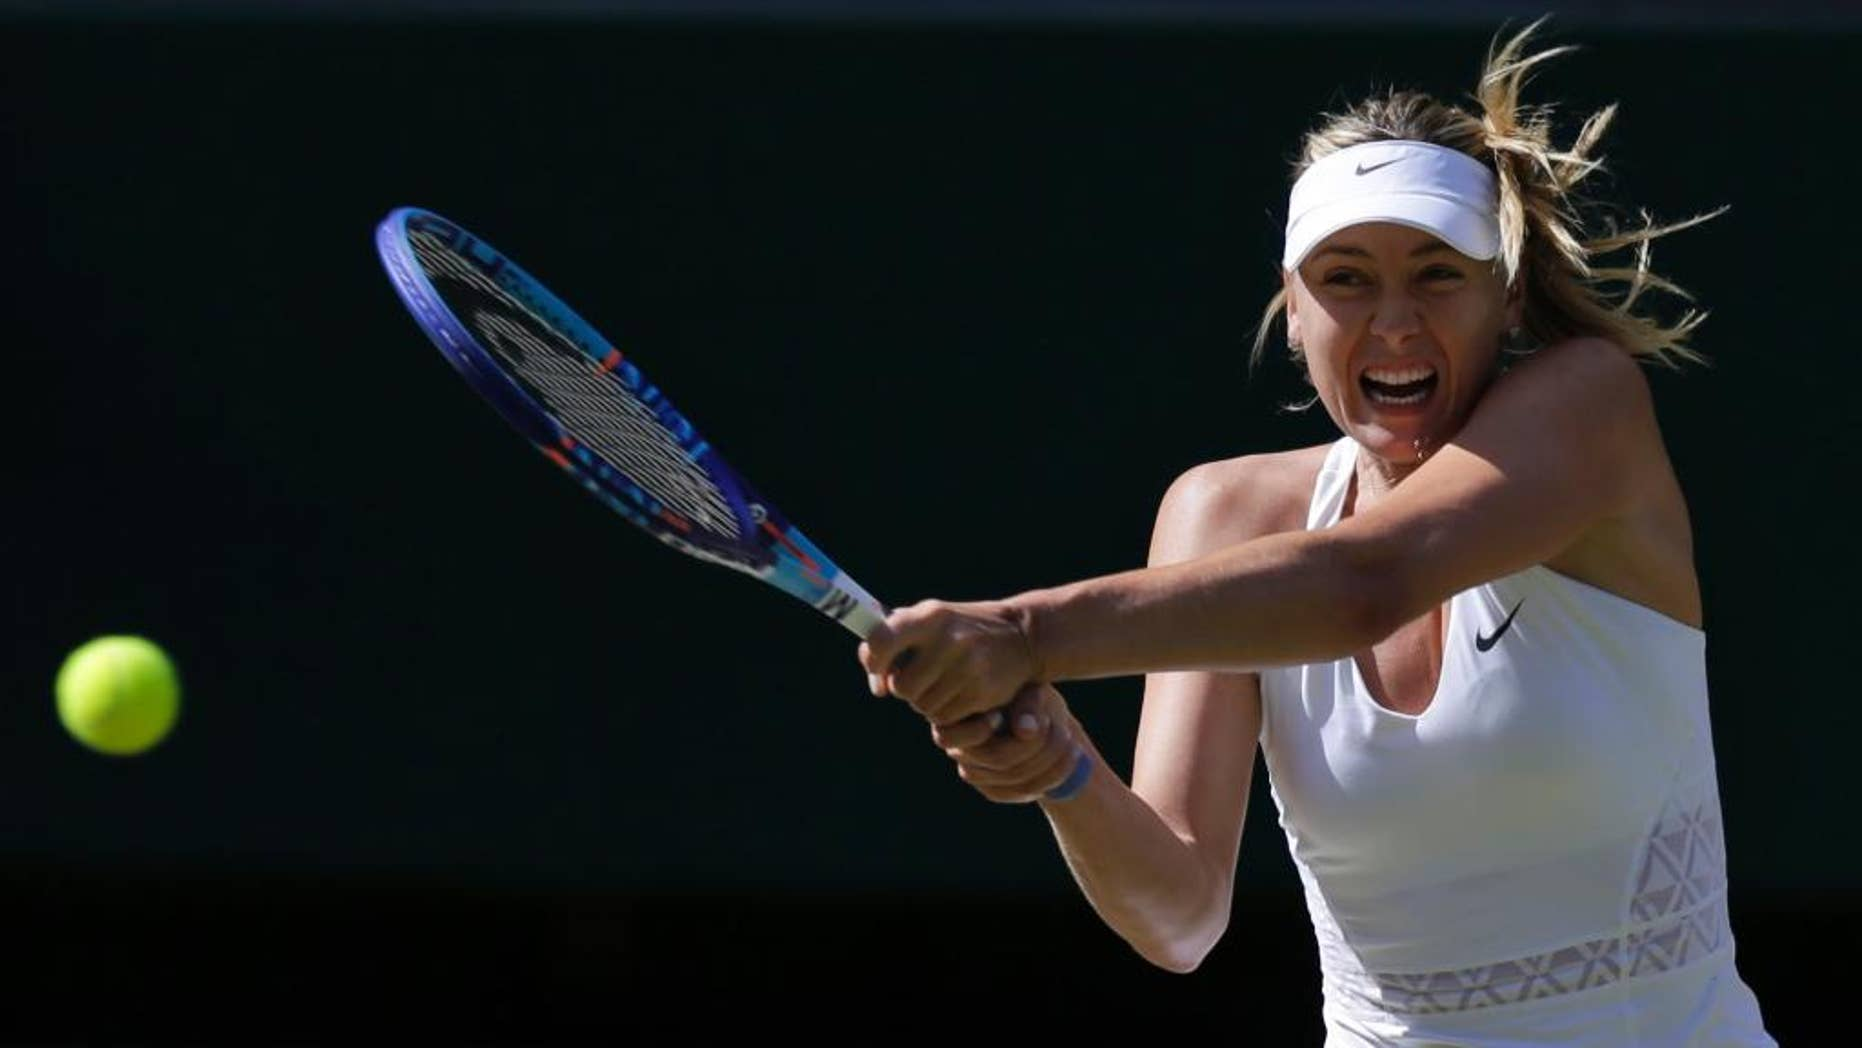 Maria Sharapova of Russia returns a shot to   Serena Williams of the United States, during the women's singles semifinal match at the All England Lawn Tennis Championships in Wimbledon, London, Thursday July 9, 2015. (AP Photo/Pavel Golovkin)